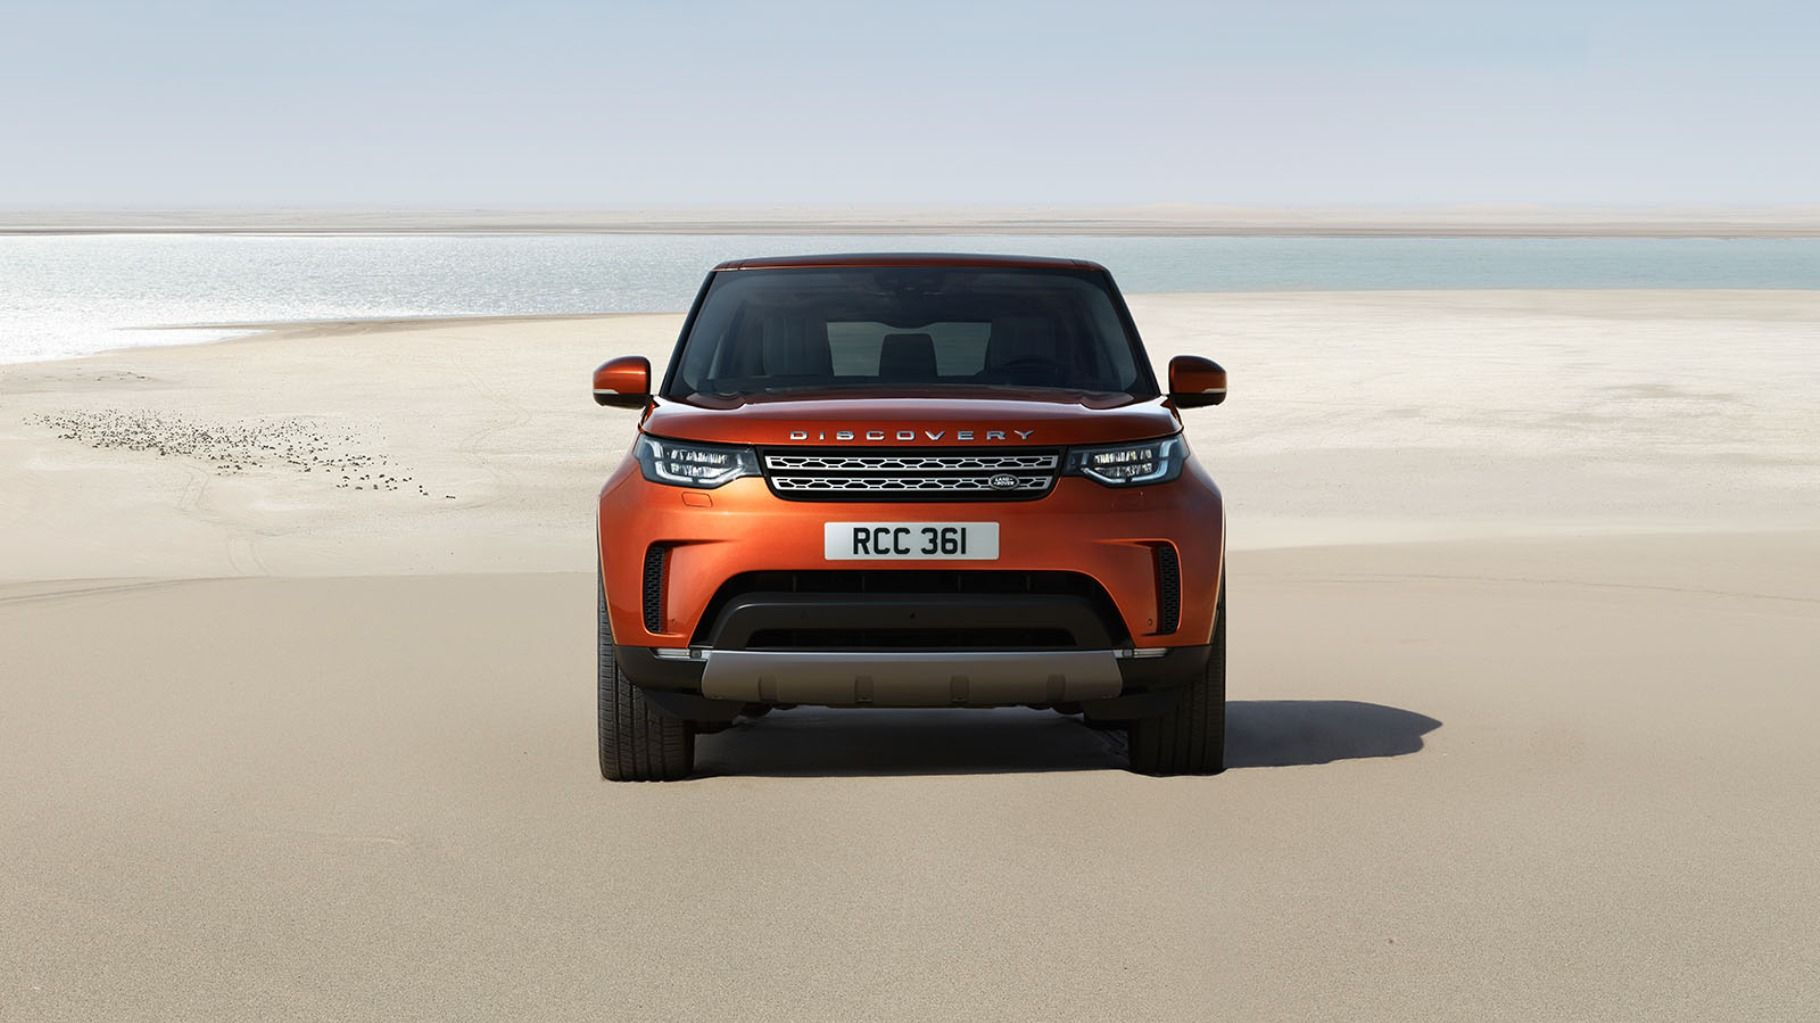 New LandRover Discovery 2017 launched at Rs. 68.05 Lakh